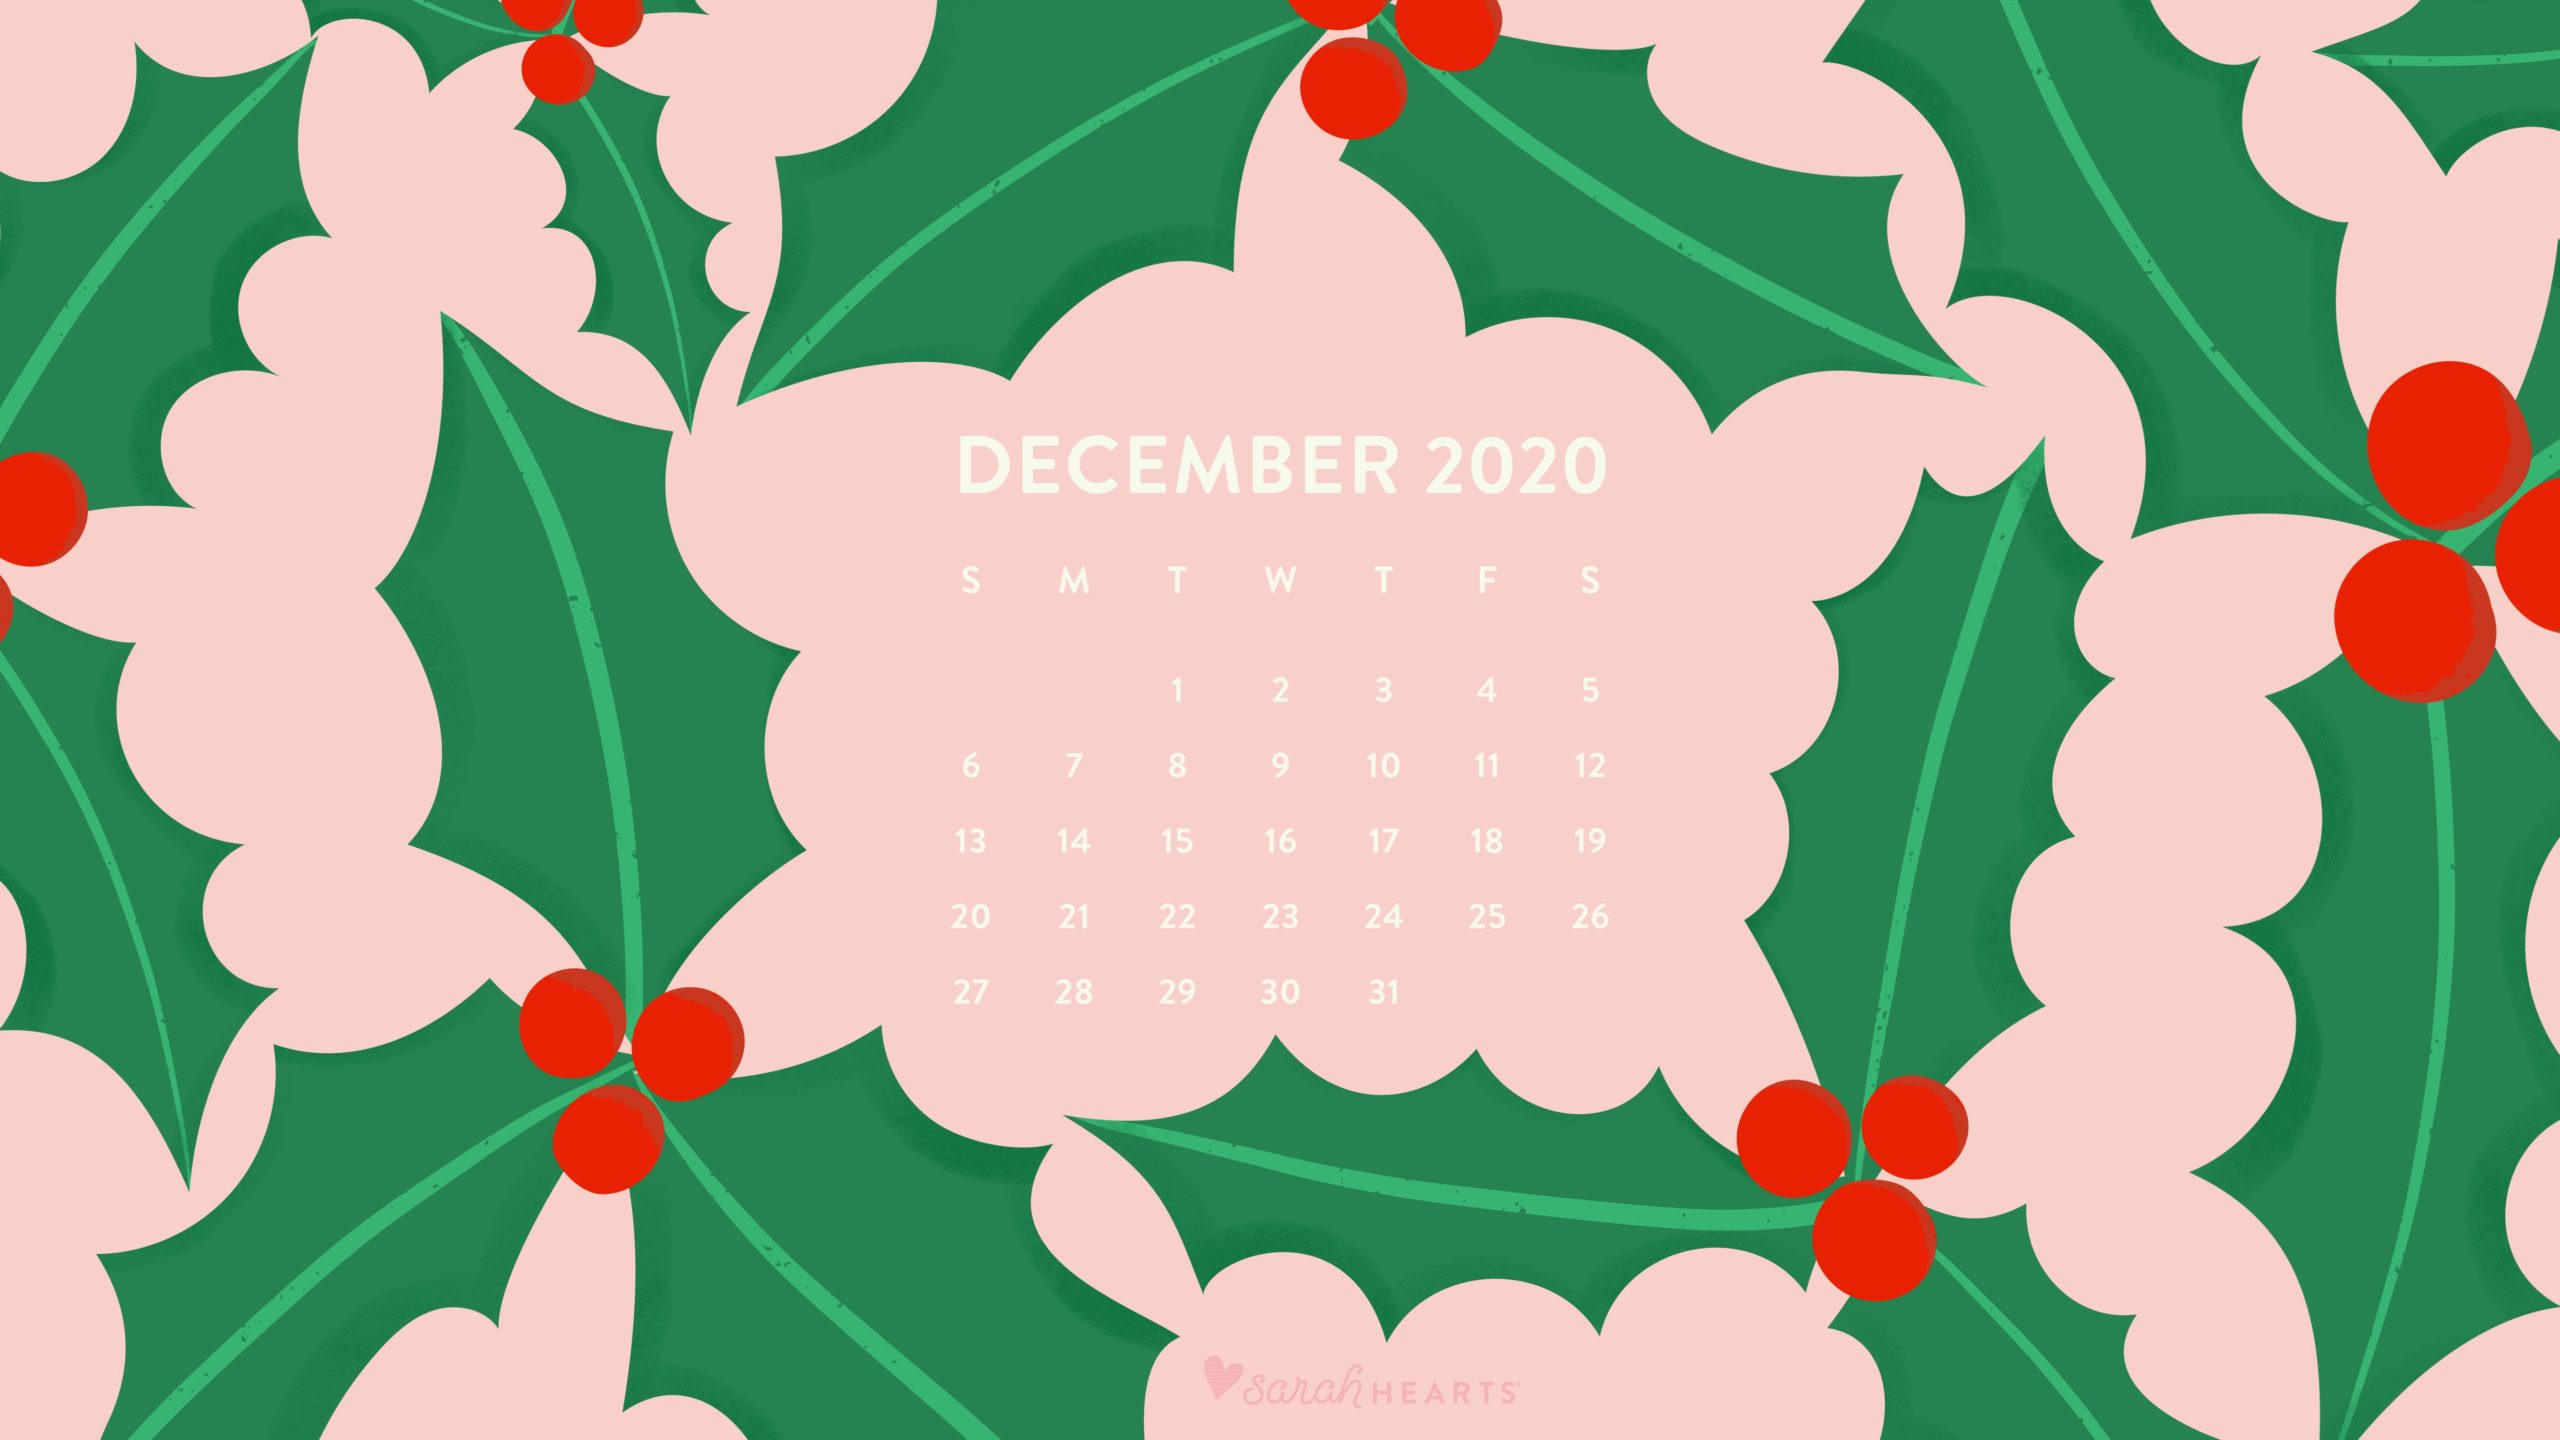 December 2020 Holly Calendar Wallpaper - Sarah Hearts